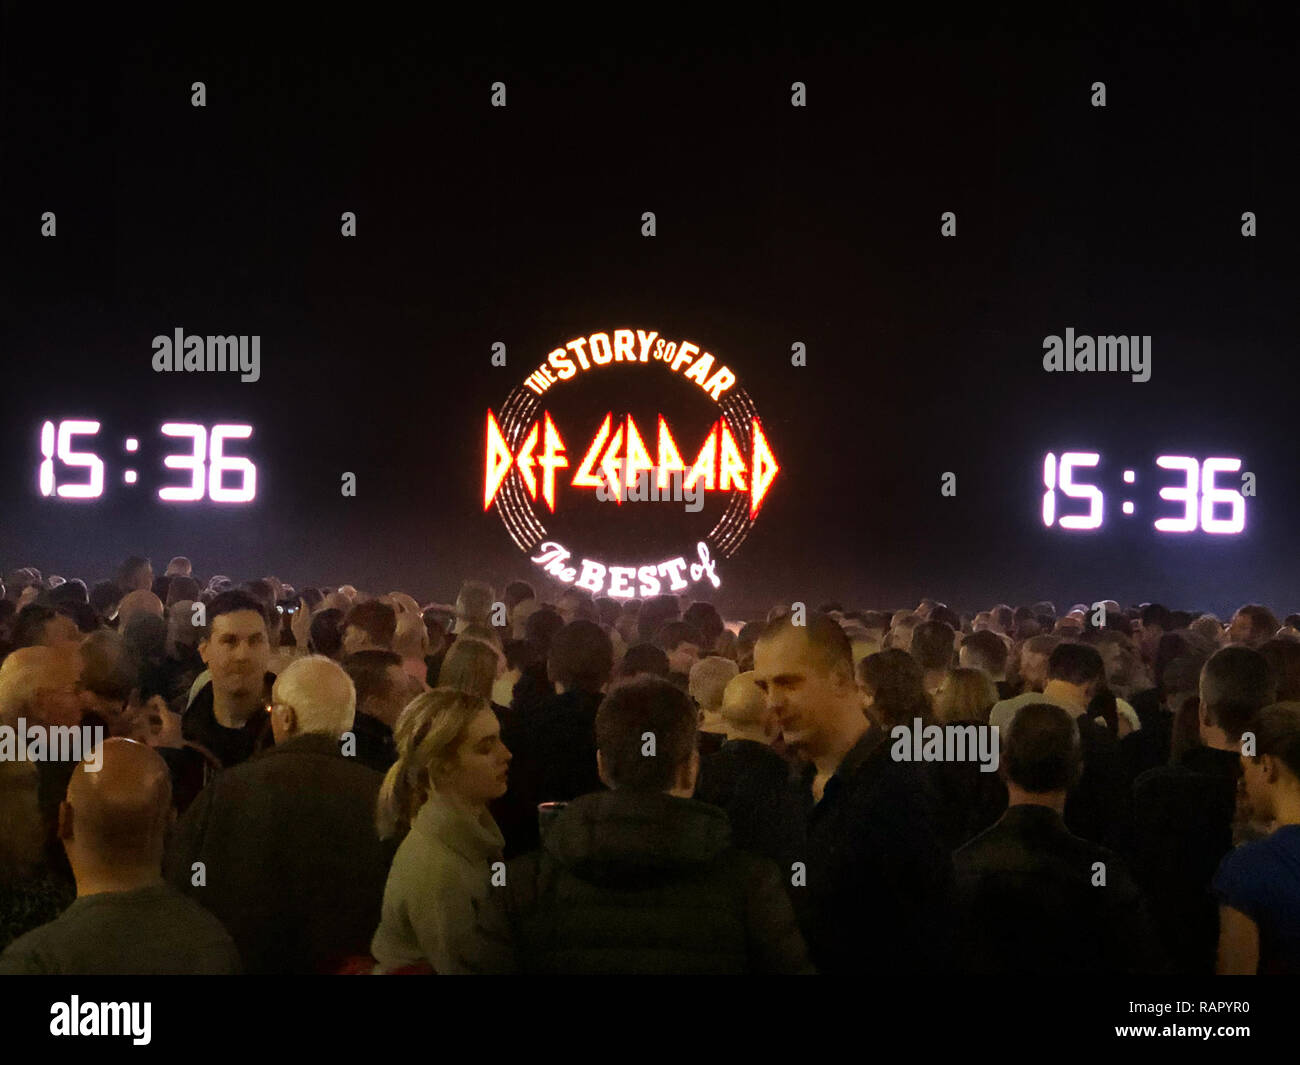 Minutes before the start of the Def leppard concert on their Hysteria tour at the Manchester Arena on 12th December 2018 - Stock Image